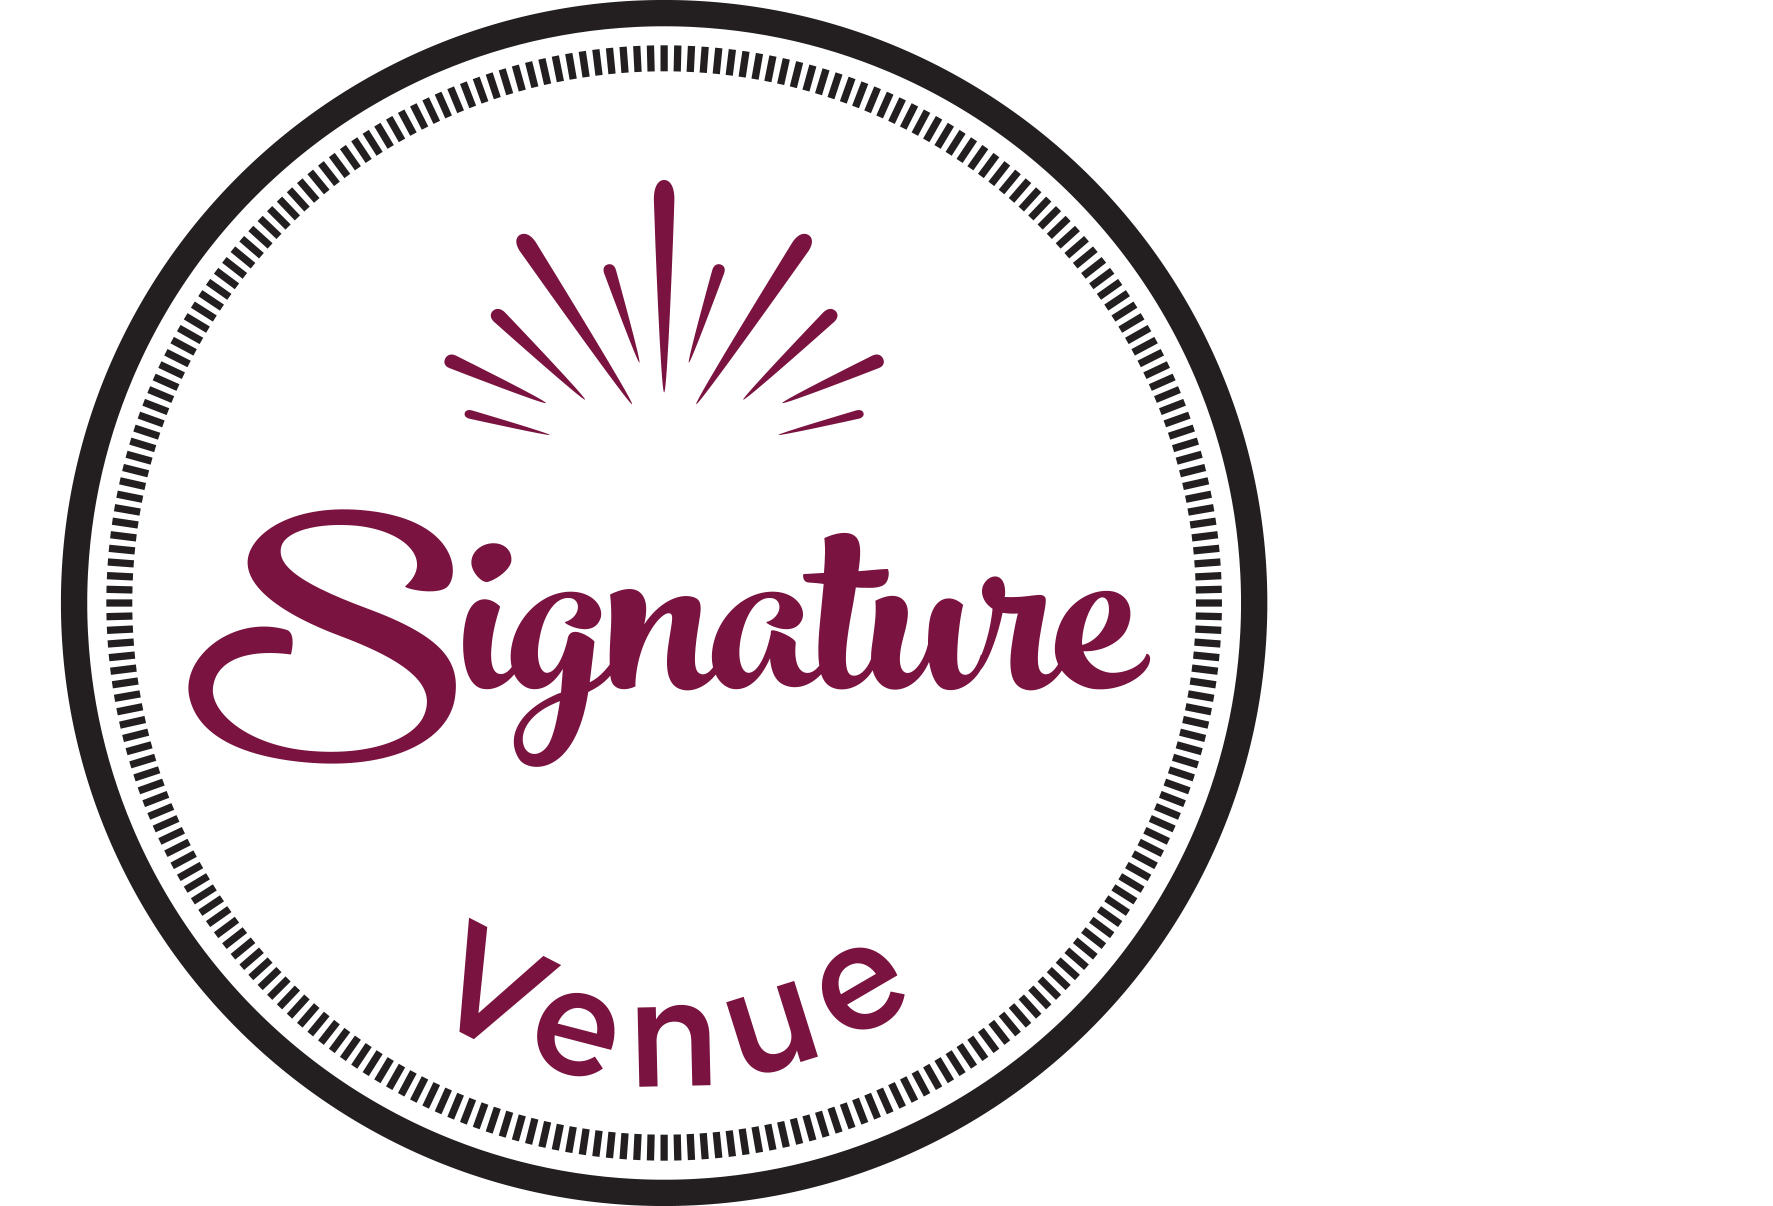 Orbit Creative Signature Venue Books